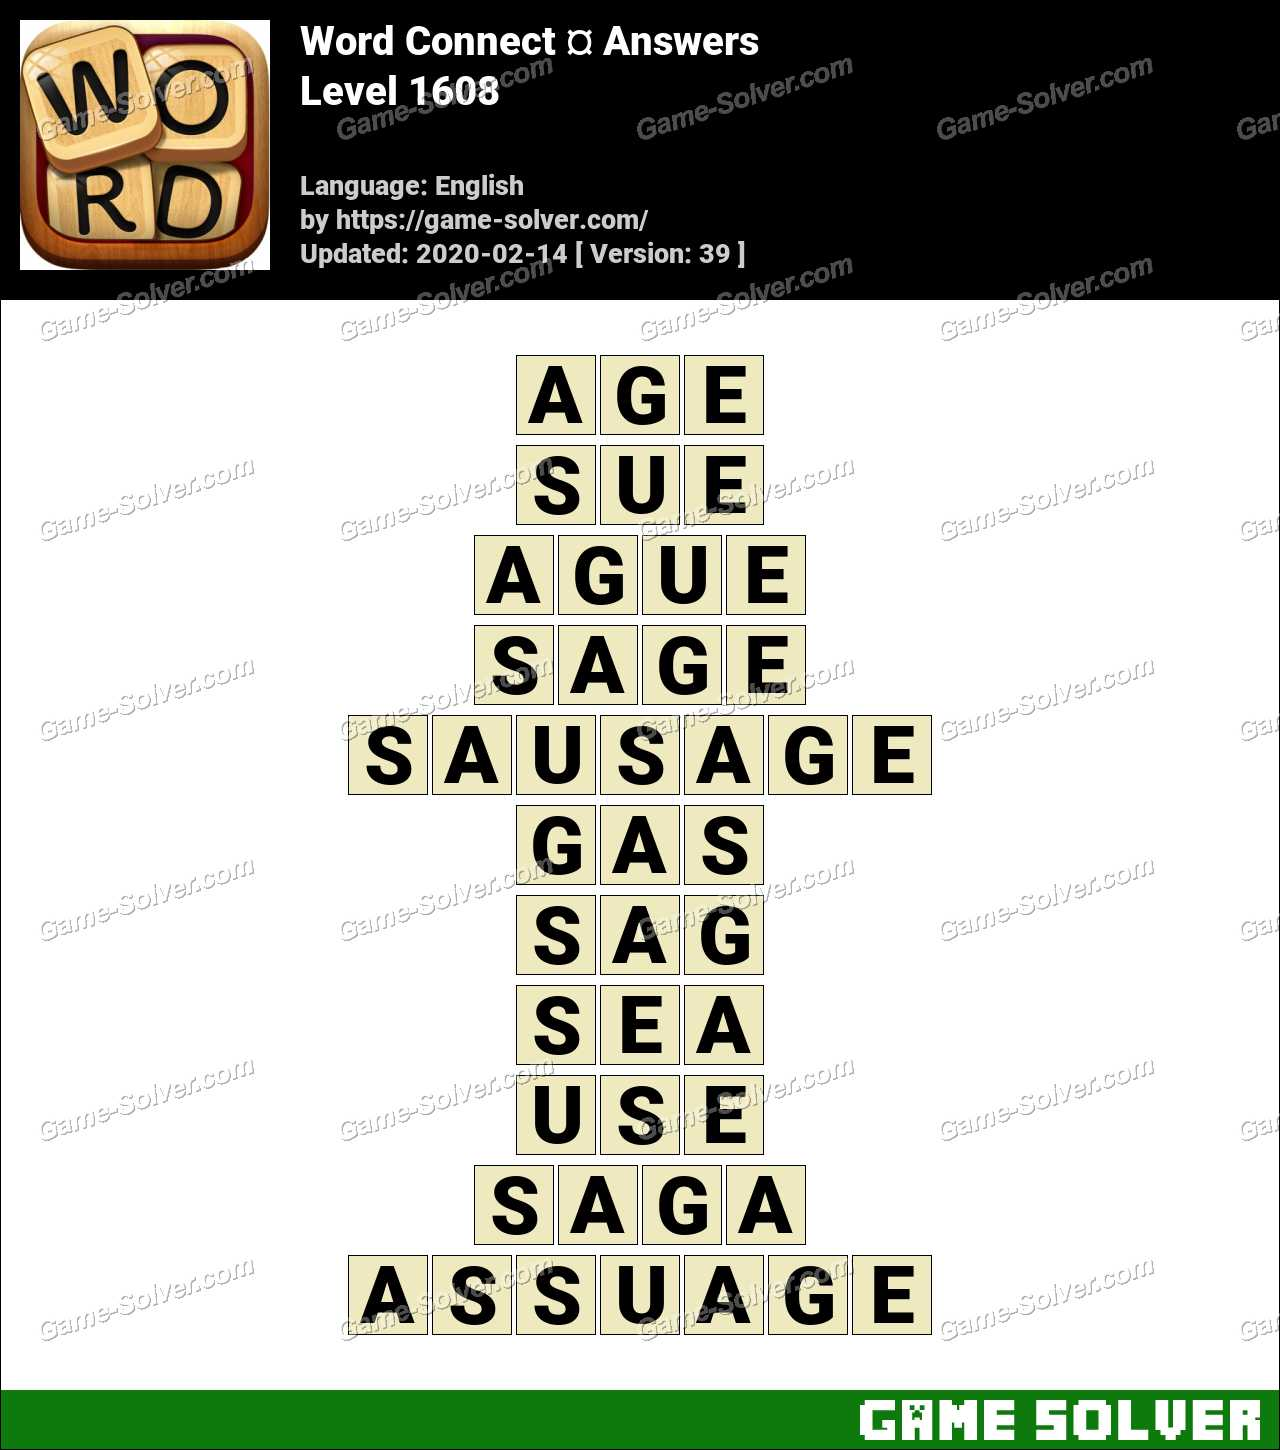 Word Connect Level 1608 Answers